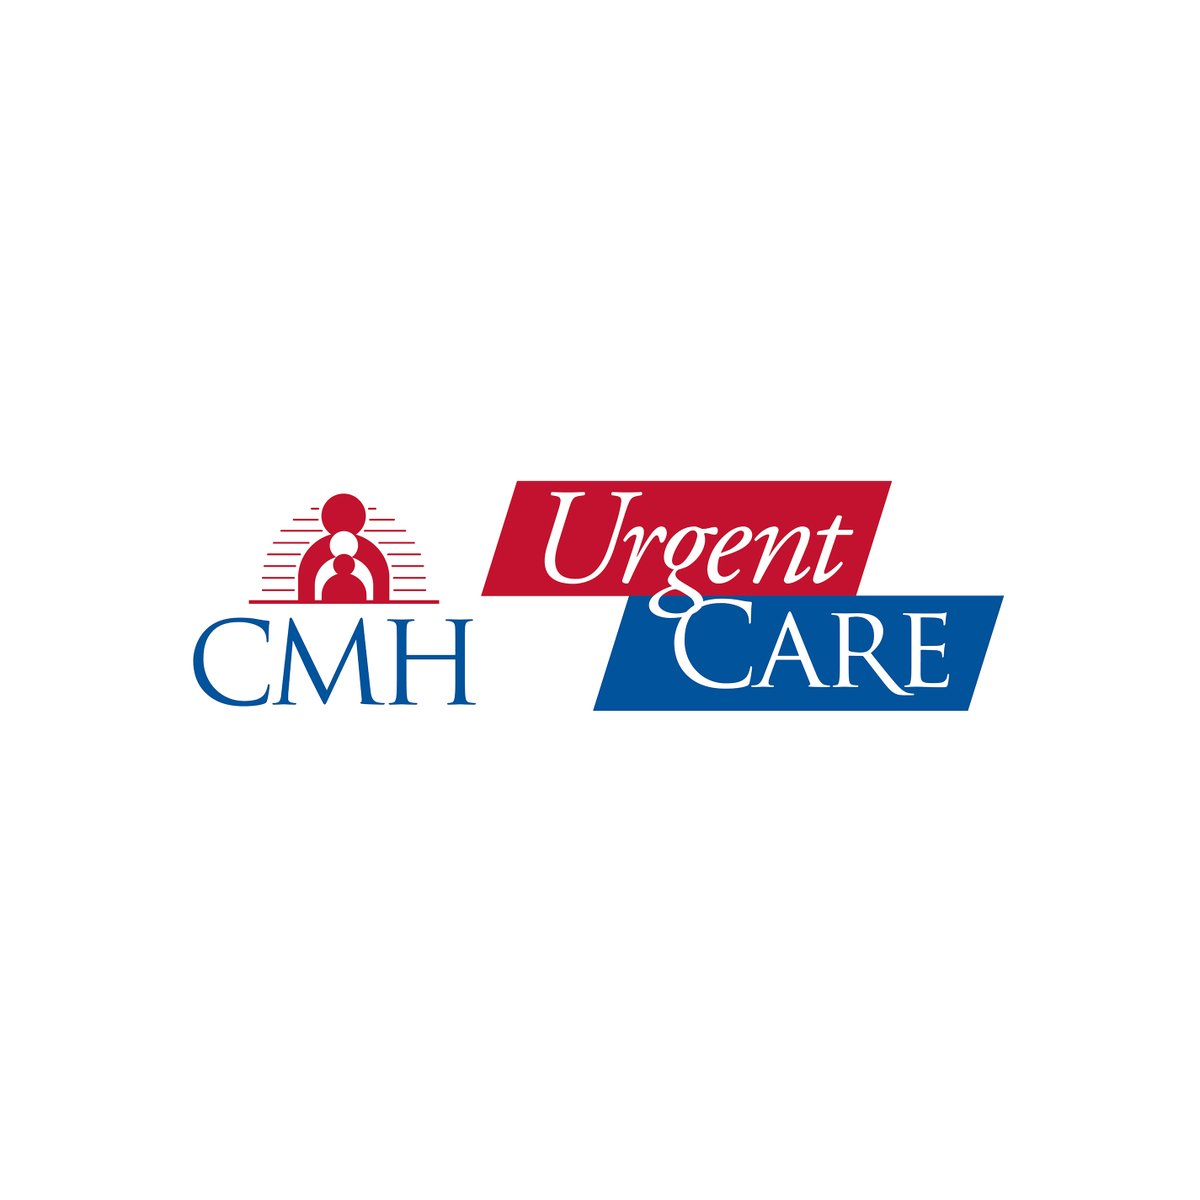 Due to provider illness, our Urgent Cares have scheduled closures this weekend. Today, Jan. 17, Seaside and Astoria UCs are closed. Warrenton is open from 9 a.m. to 6:30 p.m.  Because tomorrow, Monday, Jan. 18, is a #holiday, all three UCs will be open from 9 a.m. to 5:30 p.m. https://t.co/XMGO7GvfaM